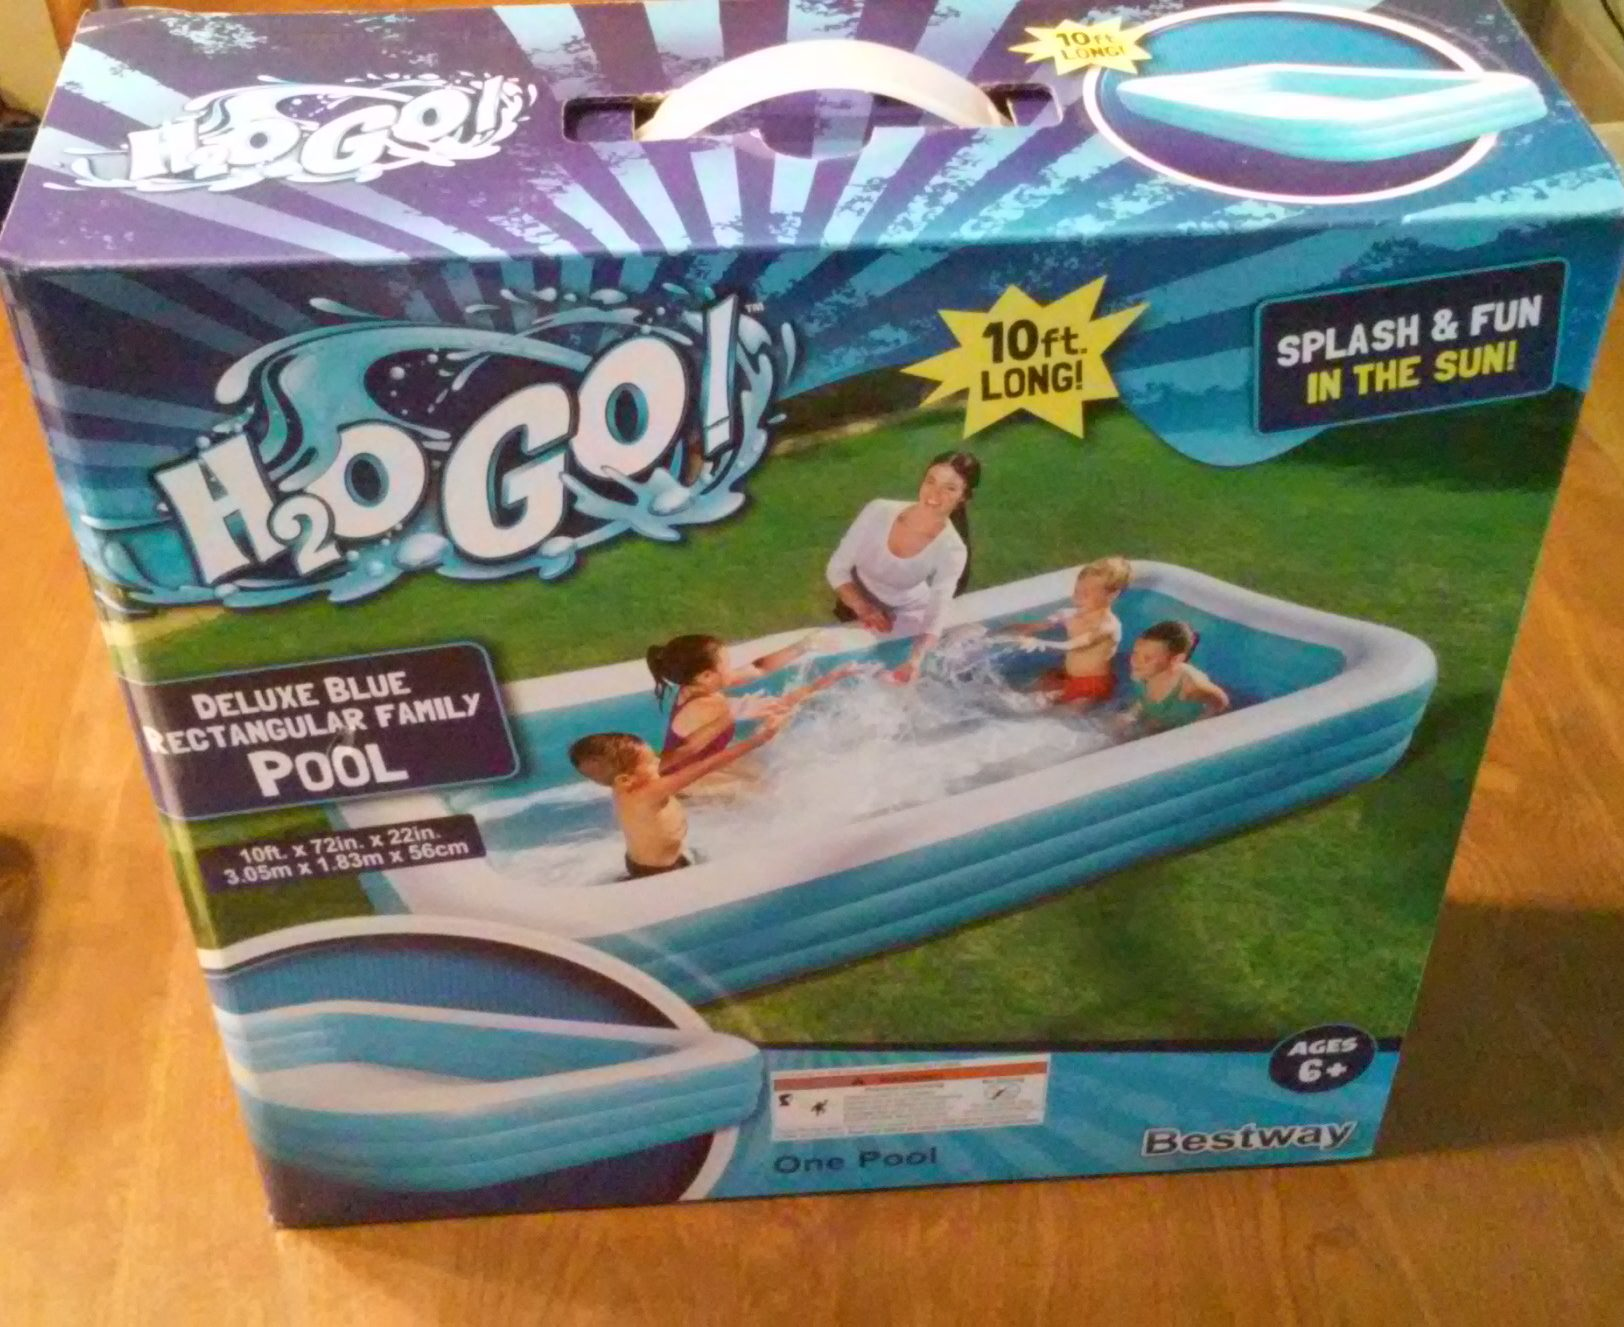 Aldi Intex Pool H2o Go Deluxe Blue Rectangular Family Pool Aldi Reviewer